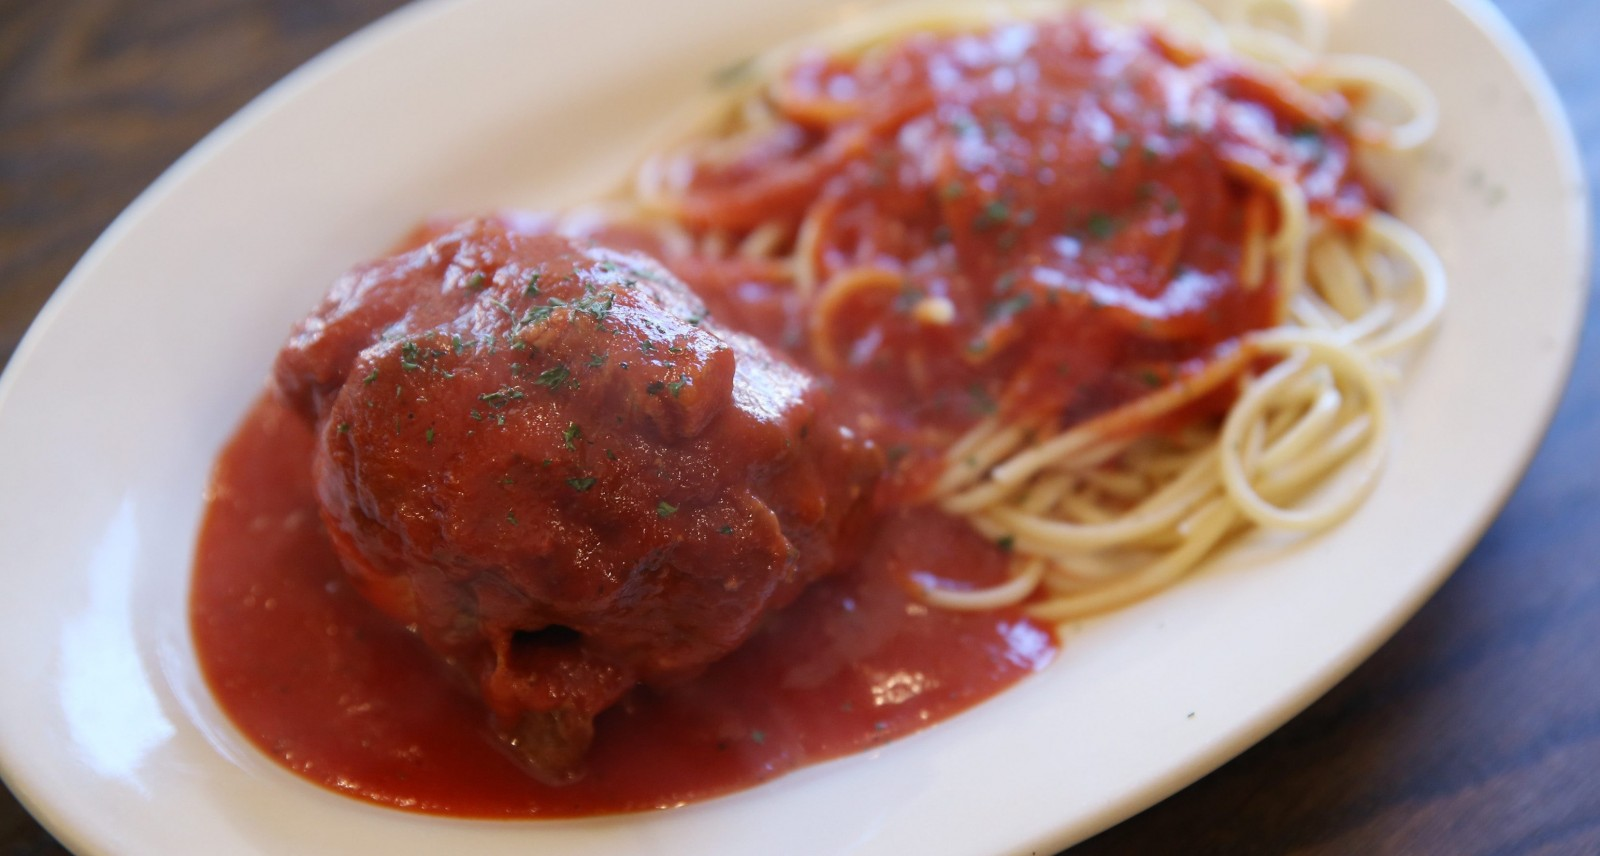 Braciole is a Wednesday specialty at Panaro's Italian Cuisine. (Sharon Cantillon/Buffalo News)